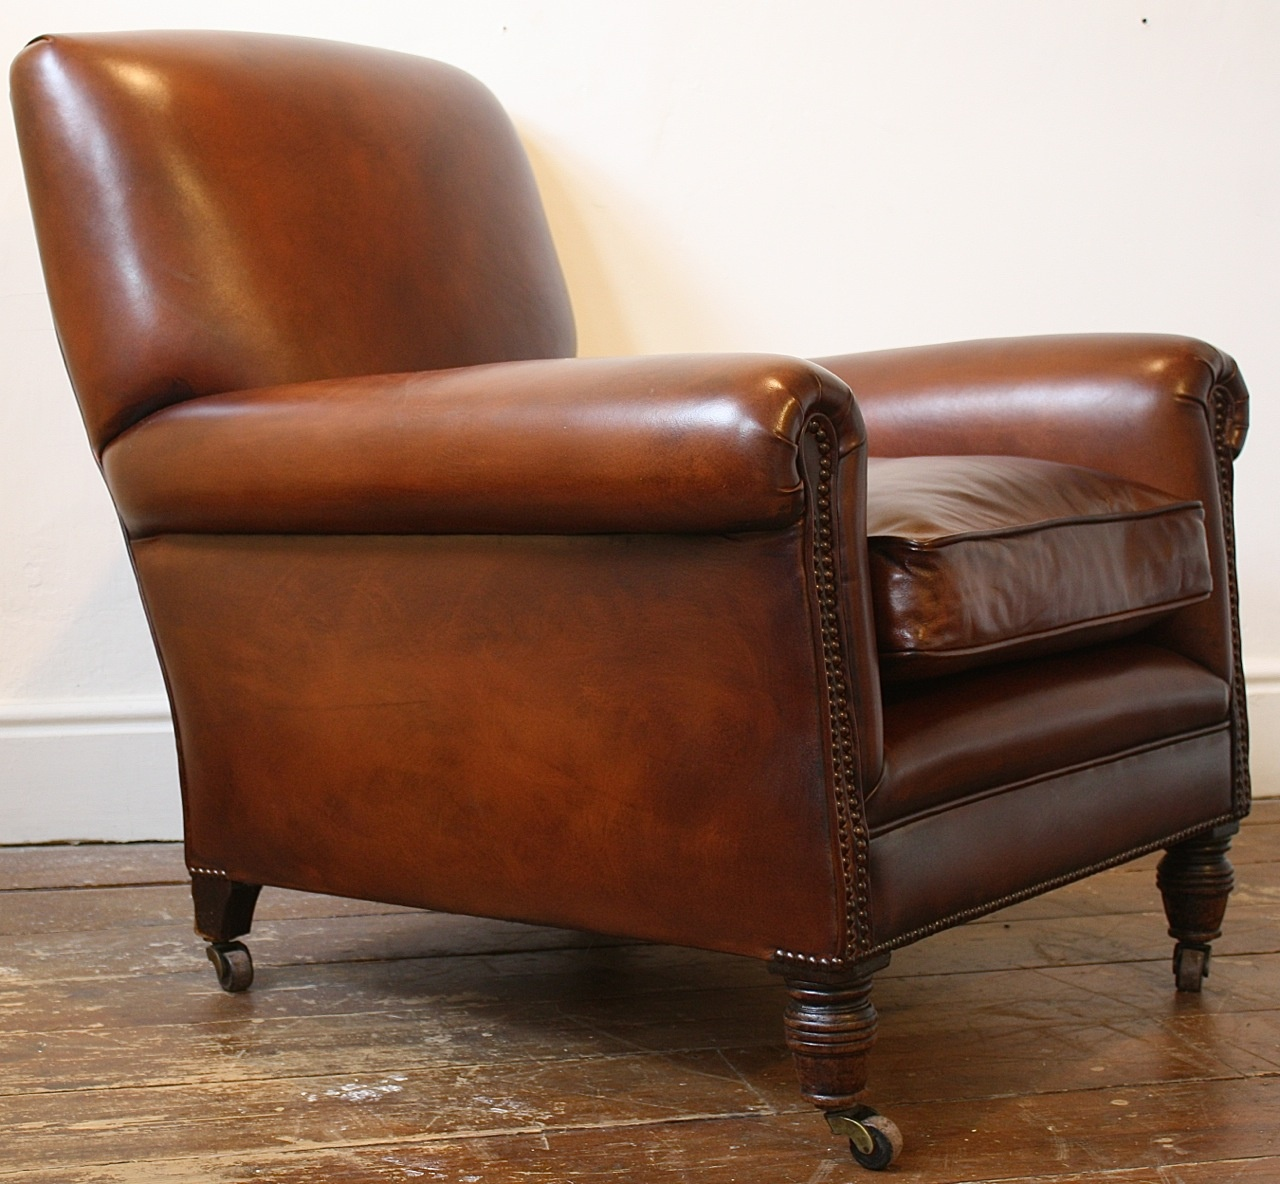 Leather Sofa Chair Reupholstered Leather Club Chair Antique Leather Chair